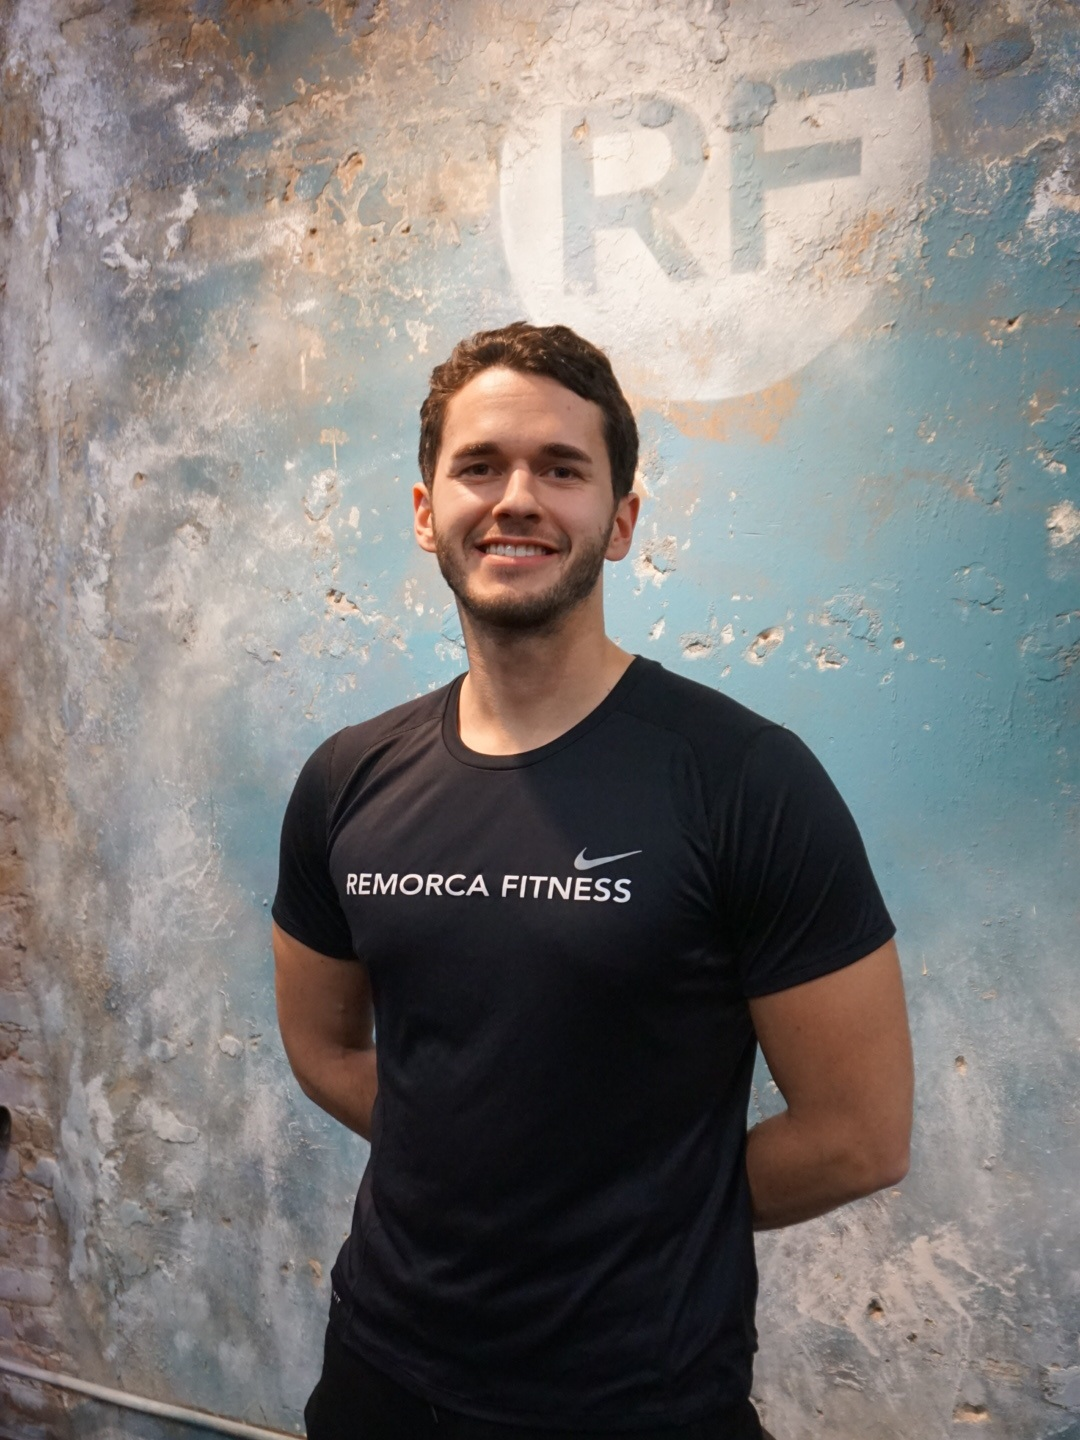 JAMES - PERSONAL TRAINER AT REMORCA FITNESS GRAMERCYCERTIFICATIONS:EDUCATION:SPECIALTY/EXPERTISE:FITNESS HOBBIES:NON FITNESS THING ABOUT ME